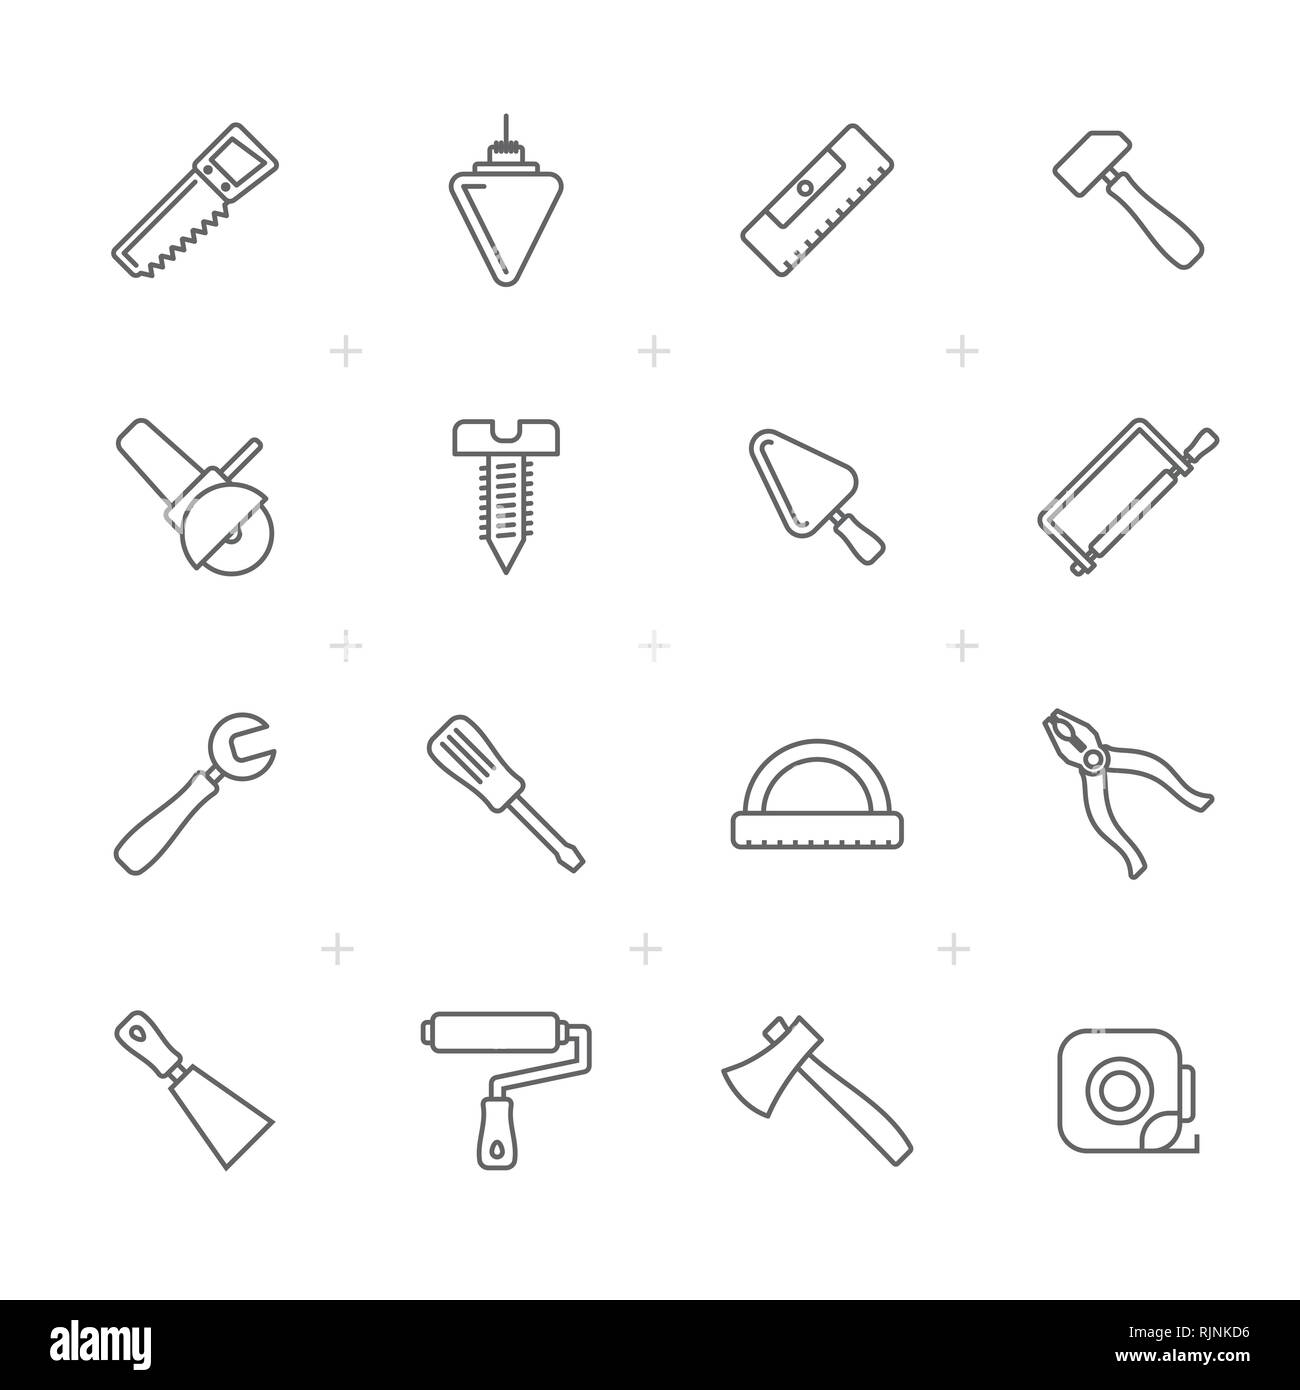 Line Building and Construction Tools icons - Vector Icon Set - Stock Vector